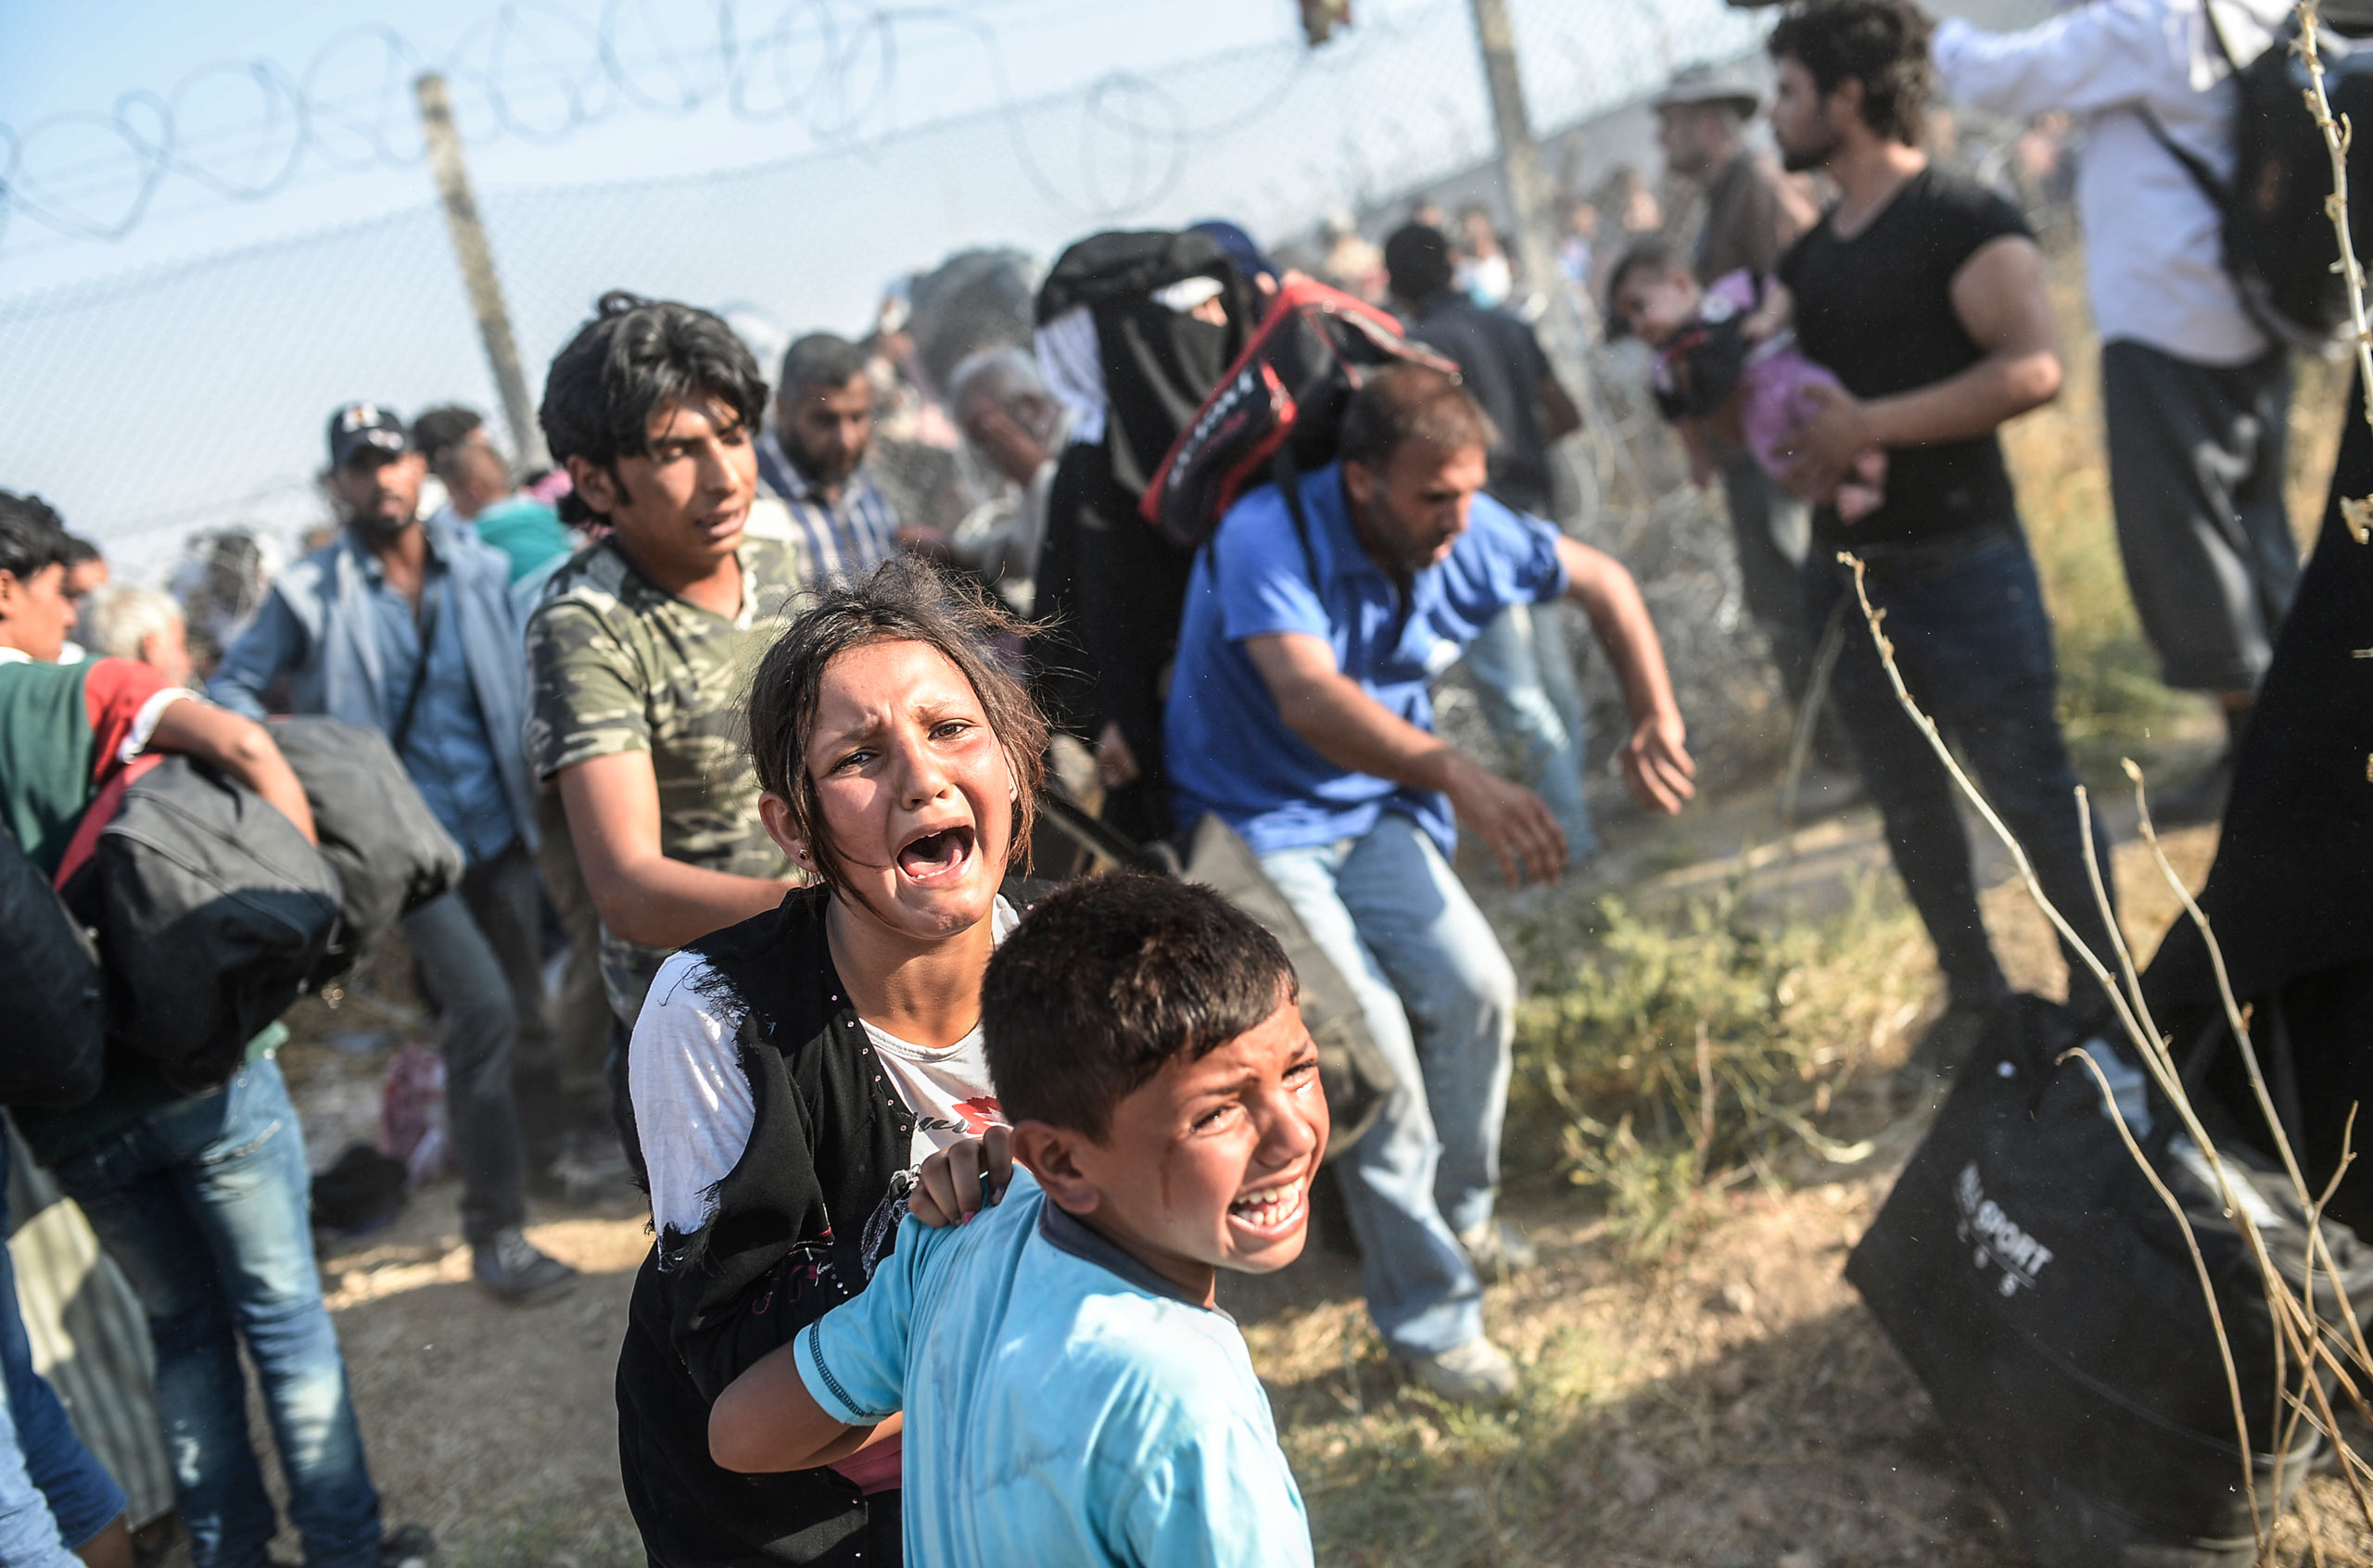 Thousands of Syrians break through the ripped fences, crossing from the Syrian town of Tell Abyad into Akçakale, in the Şanlıurfa province. Many of the refugees are families with little children and infants. June 14, 2015.